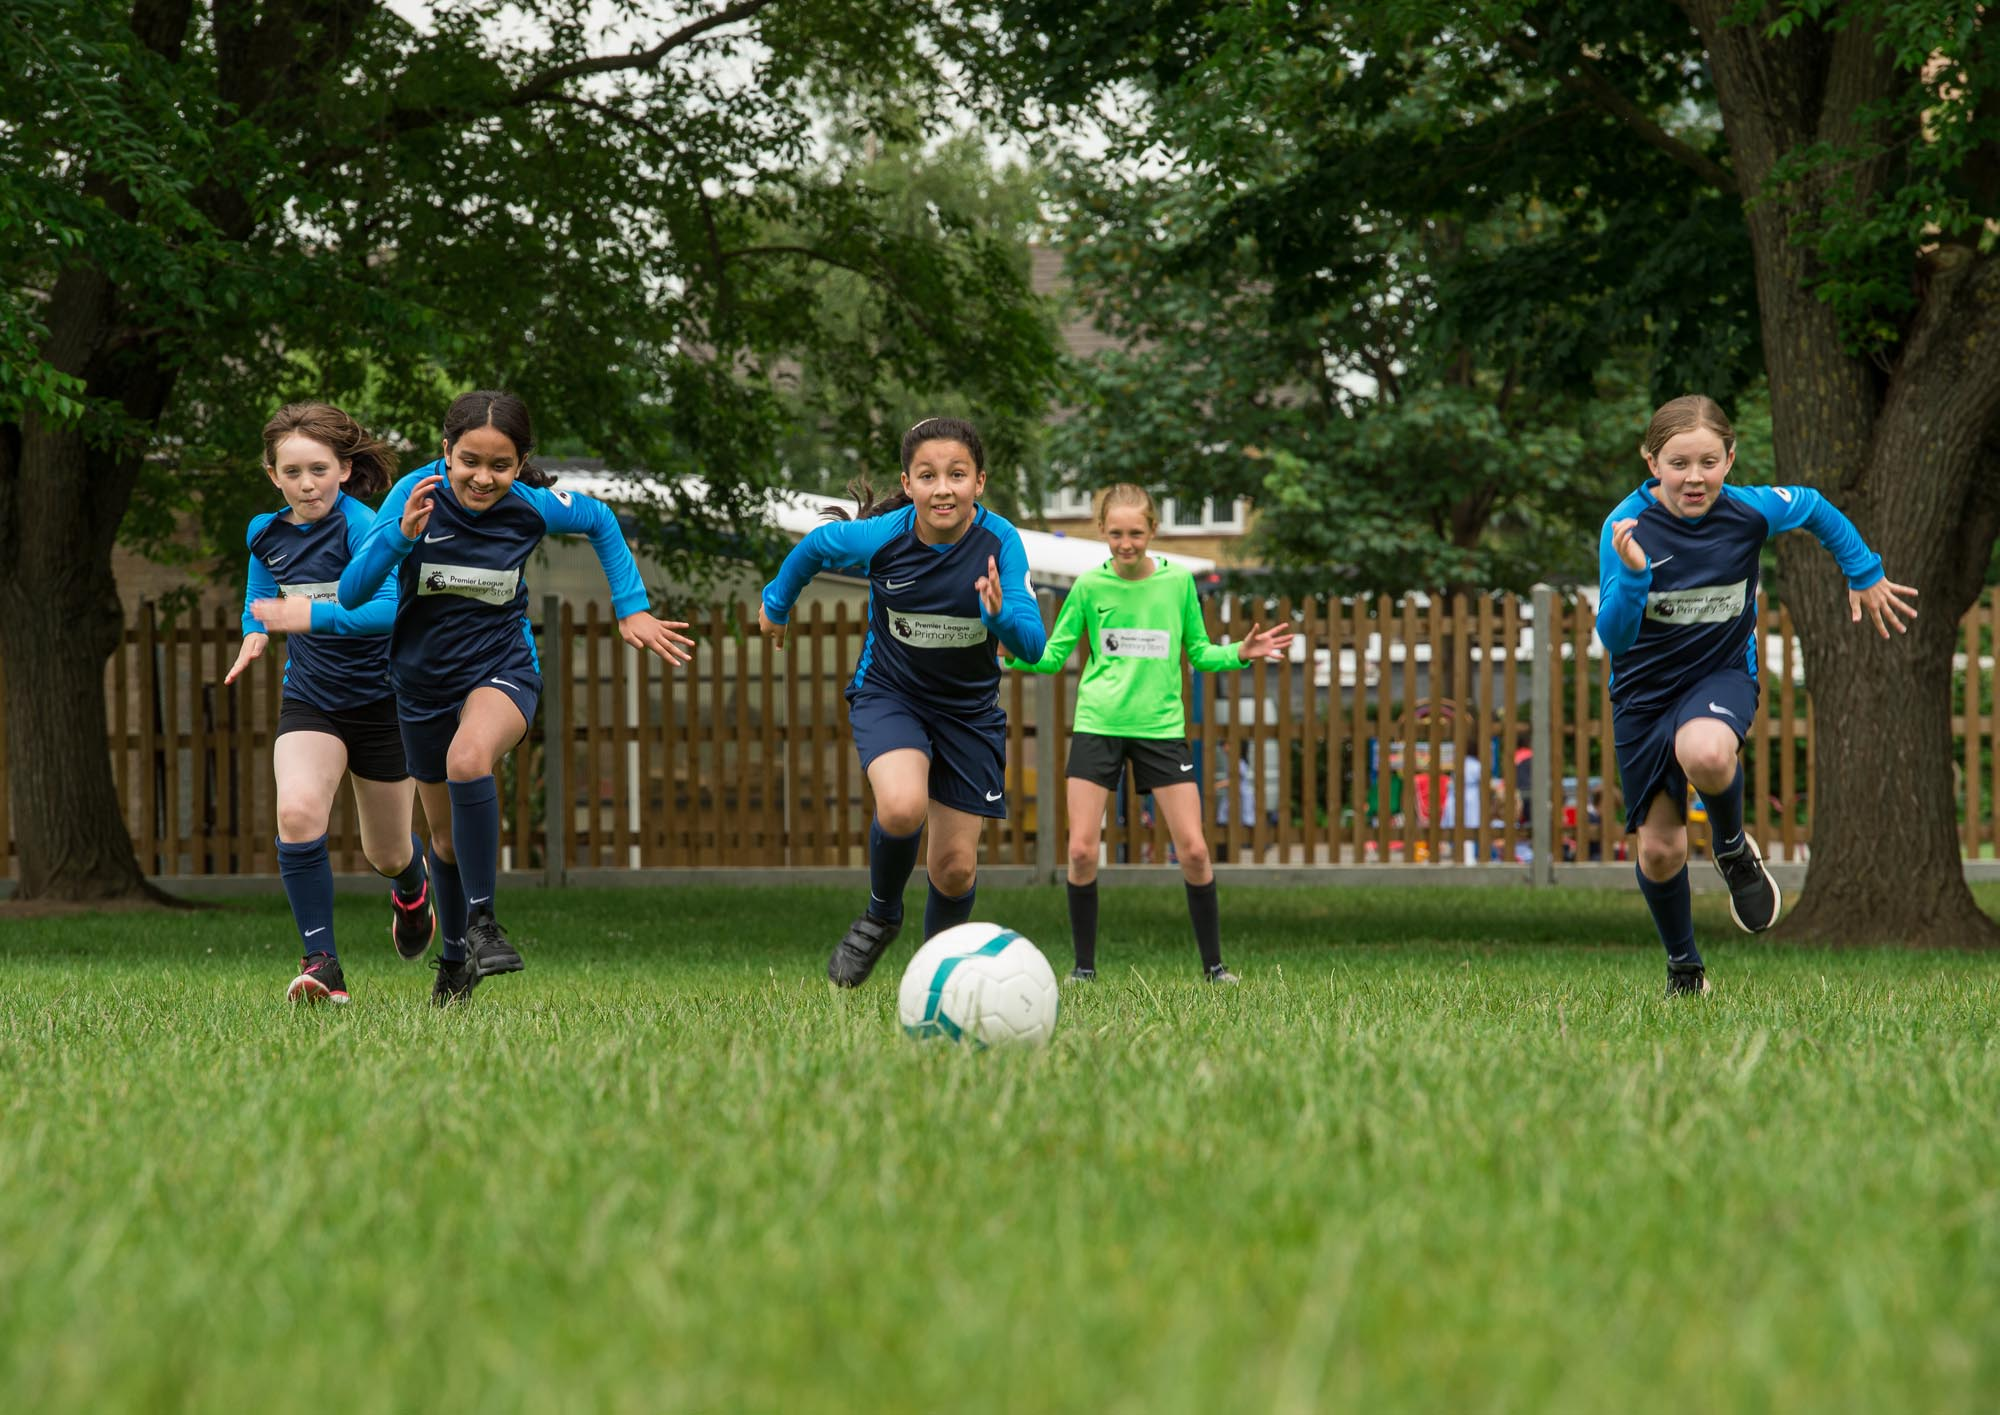 Girls playing football, running towards ball